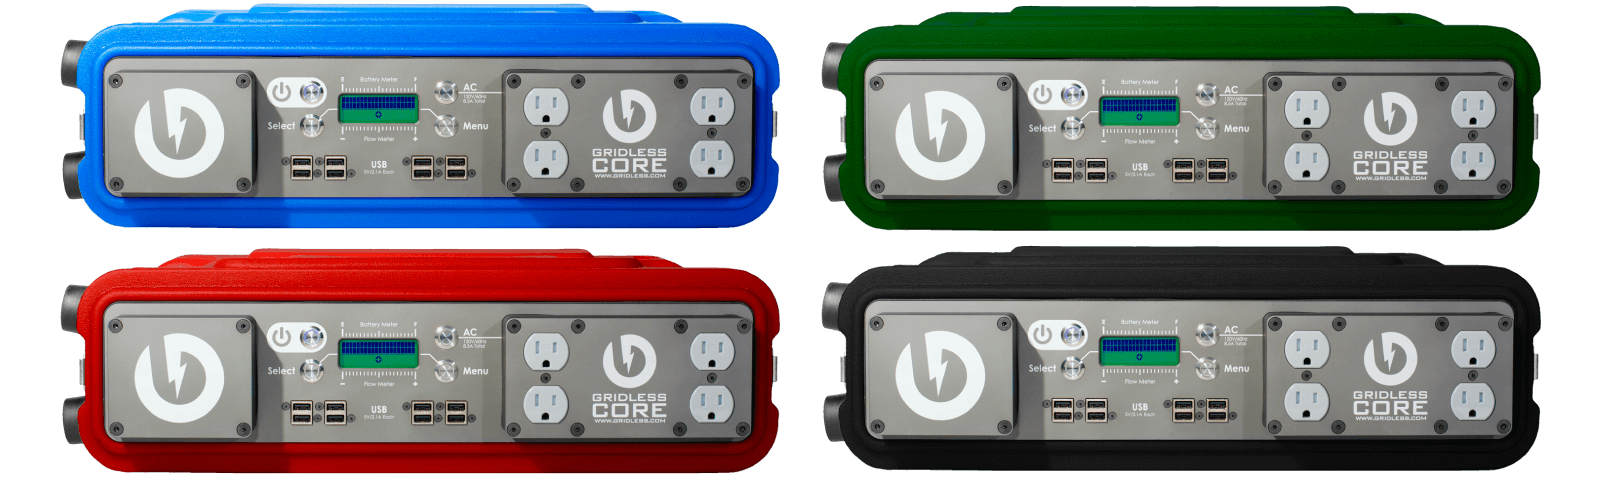 Gridless Power - Core 1k Portable Battery Pack (Multiple Colors)